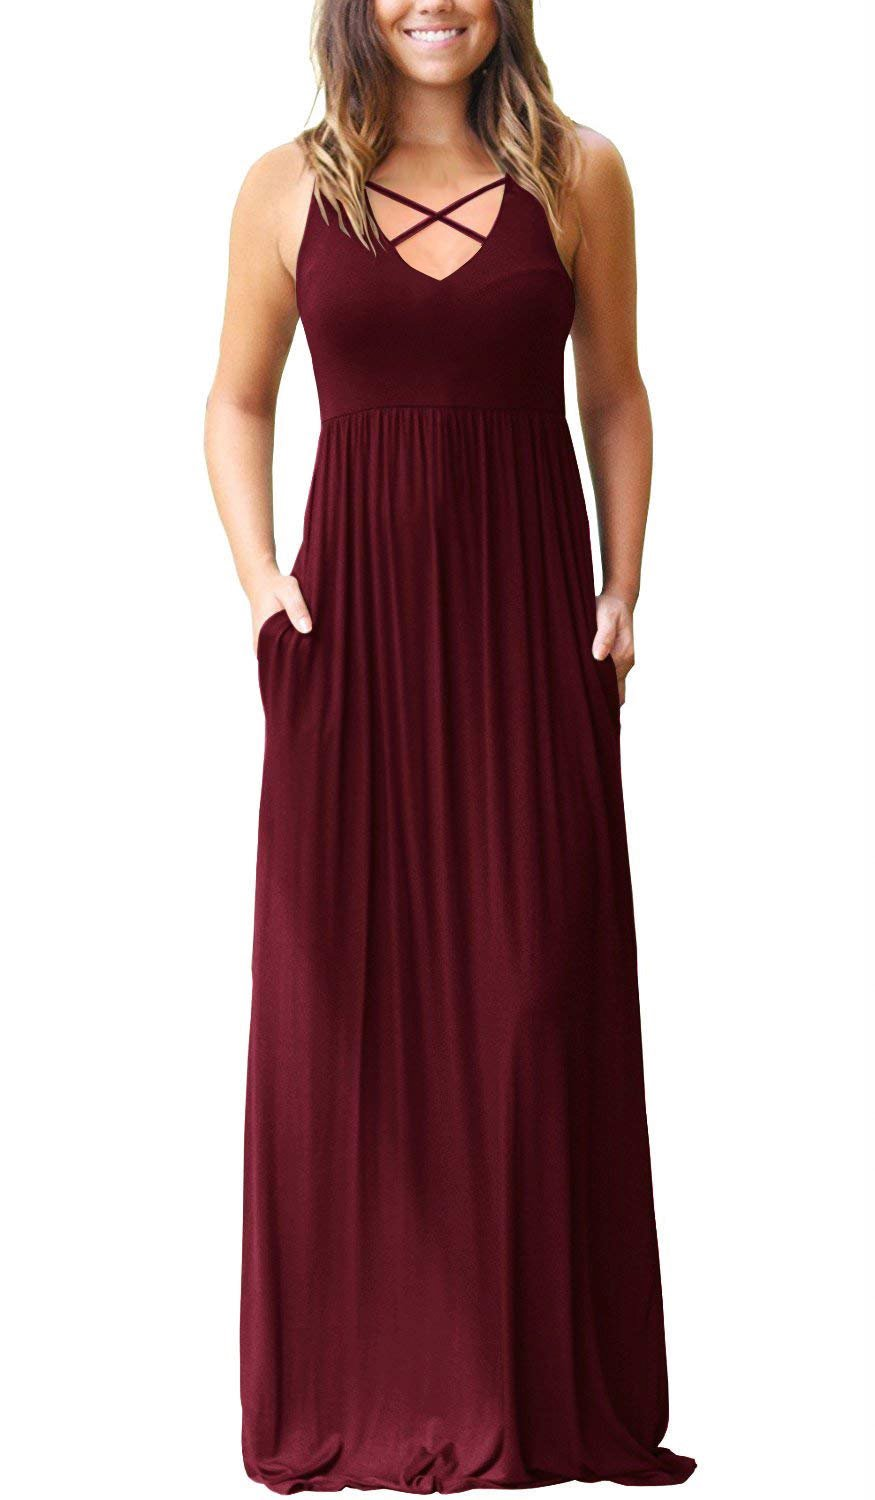 LONGYUAN Women's Maxi Dress with Crisscross V Neck and Side Pockets Long Dresse Wine Red XX-Large